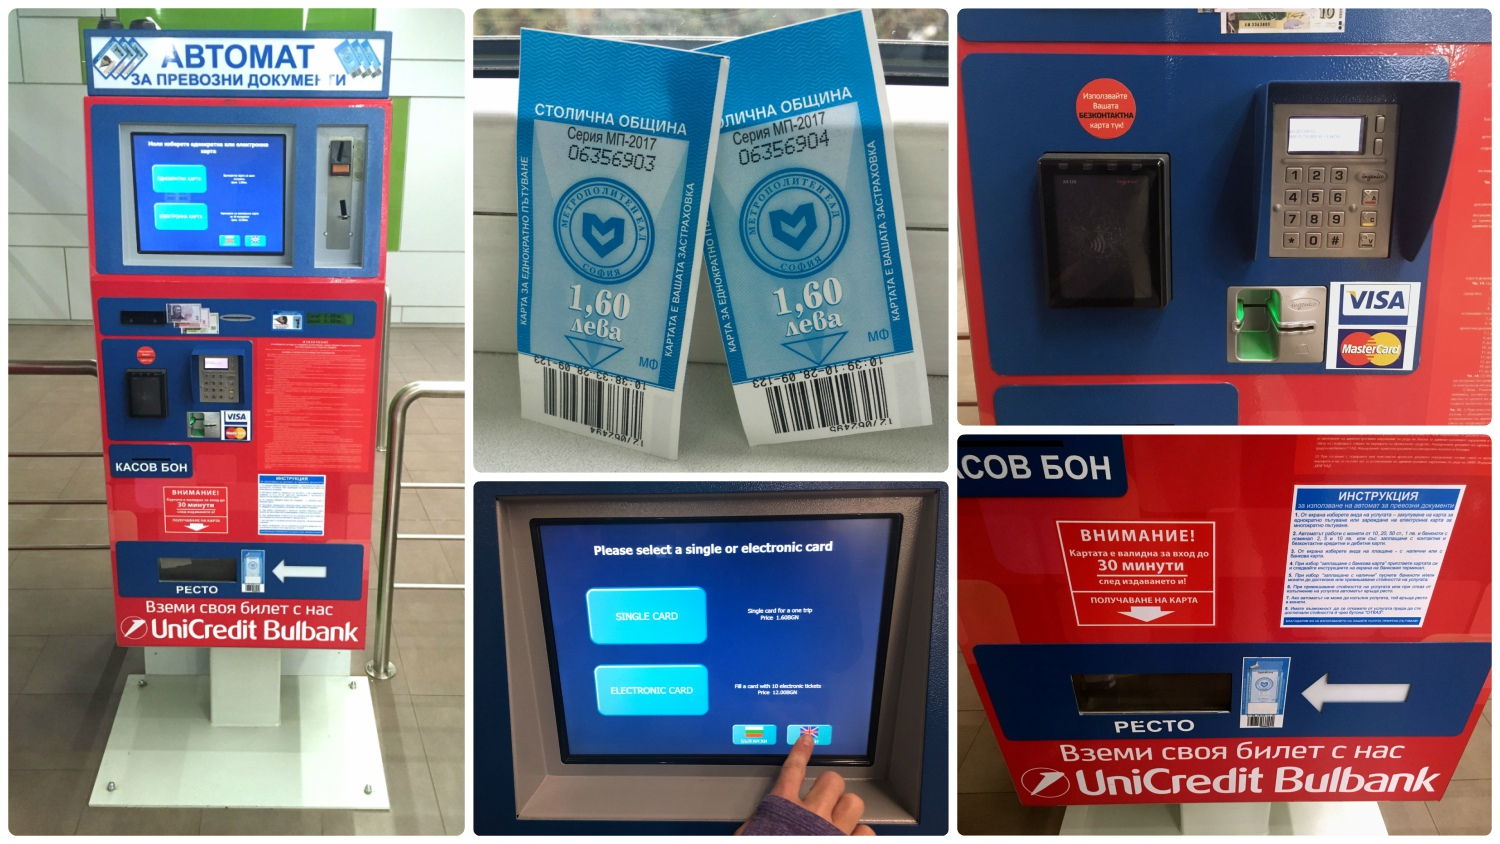 Clockwise (from the left): A Sofia metro ticket machine, two single Sofia metro tickets, the credit card portion of the machine showing that it accepts both Visa and MasterCard, the bottom of the ticket machine where you retrieve your purchased ticket(s), the touch screen on the machine to choose the type of ticket(s) you'd like to purchase - you can change the language to English by touching the button with the UK flag.